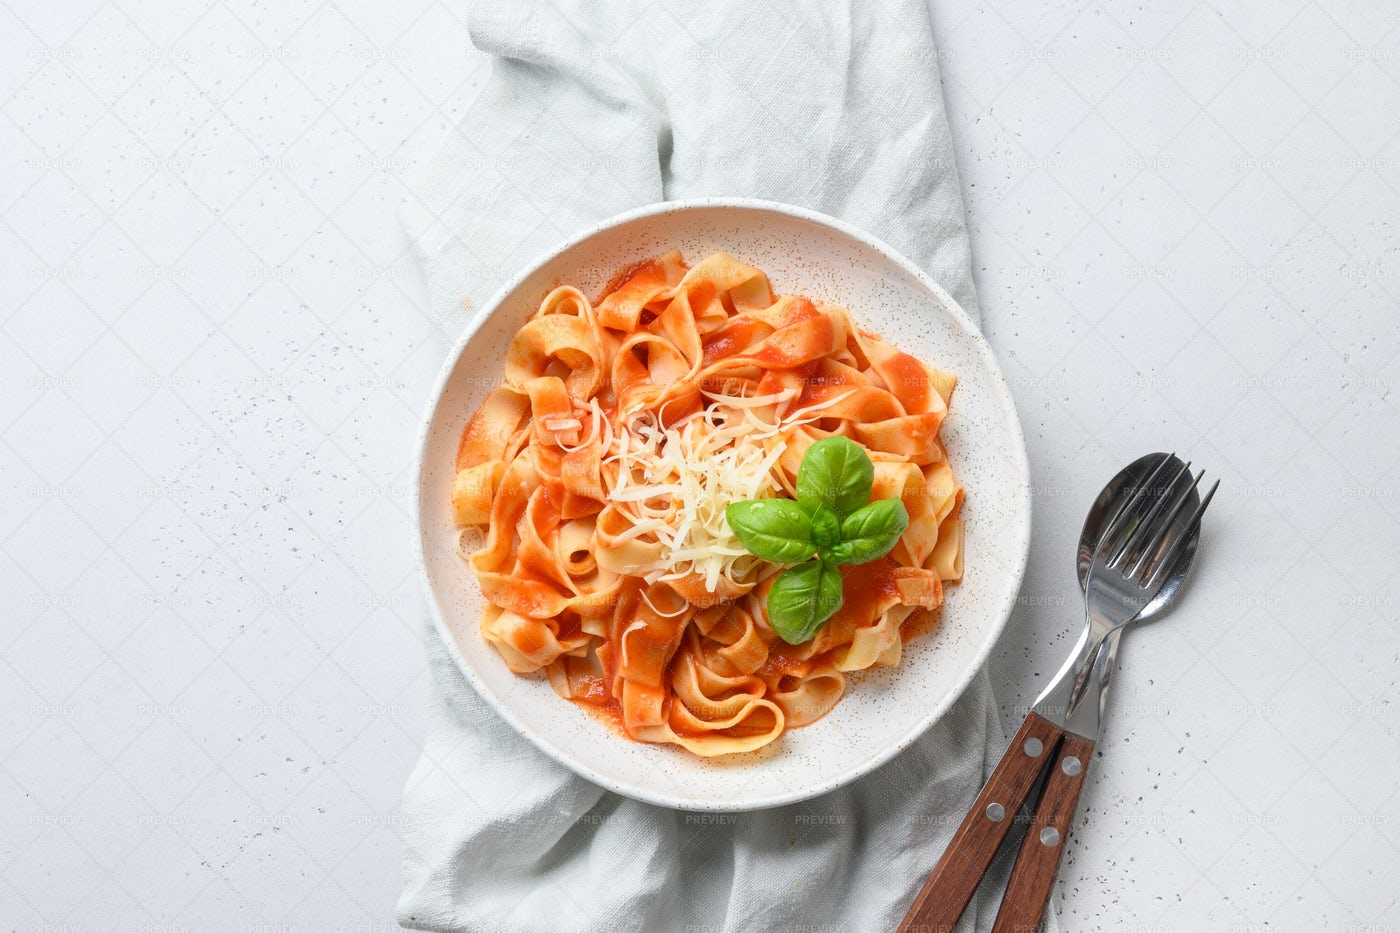 Fettuccine With Tomato Sauce And Basil: Stock Photos